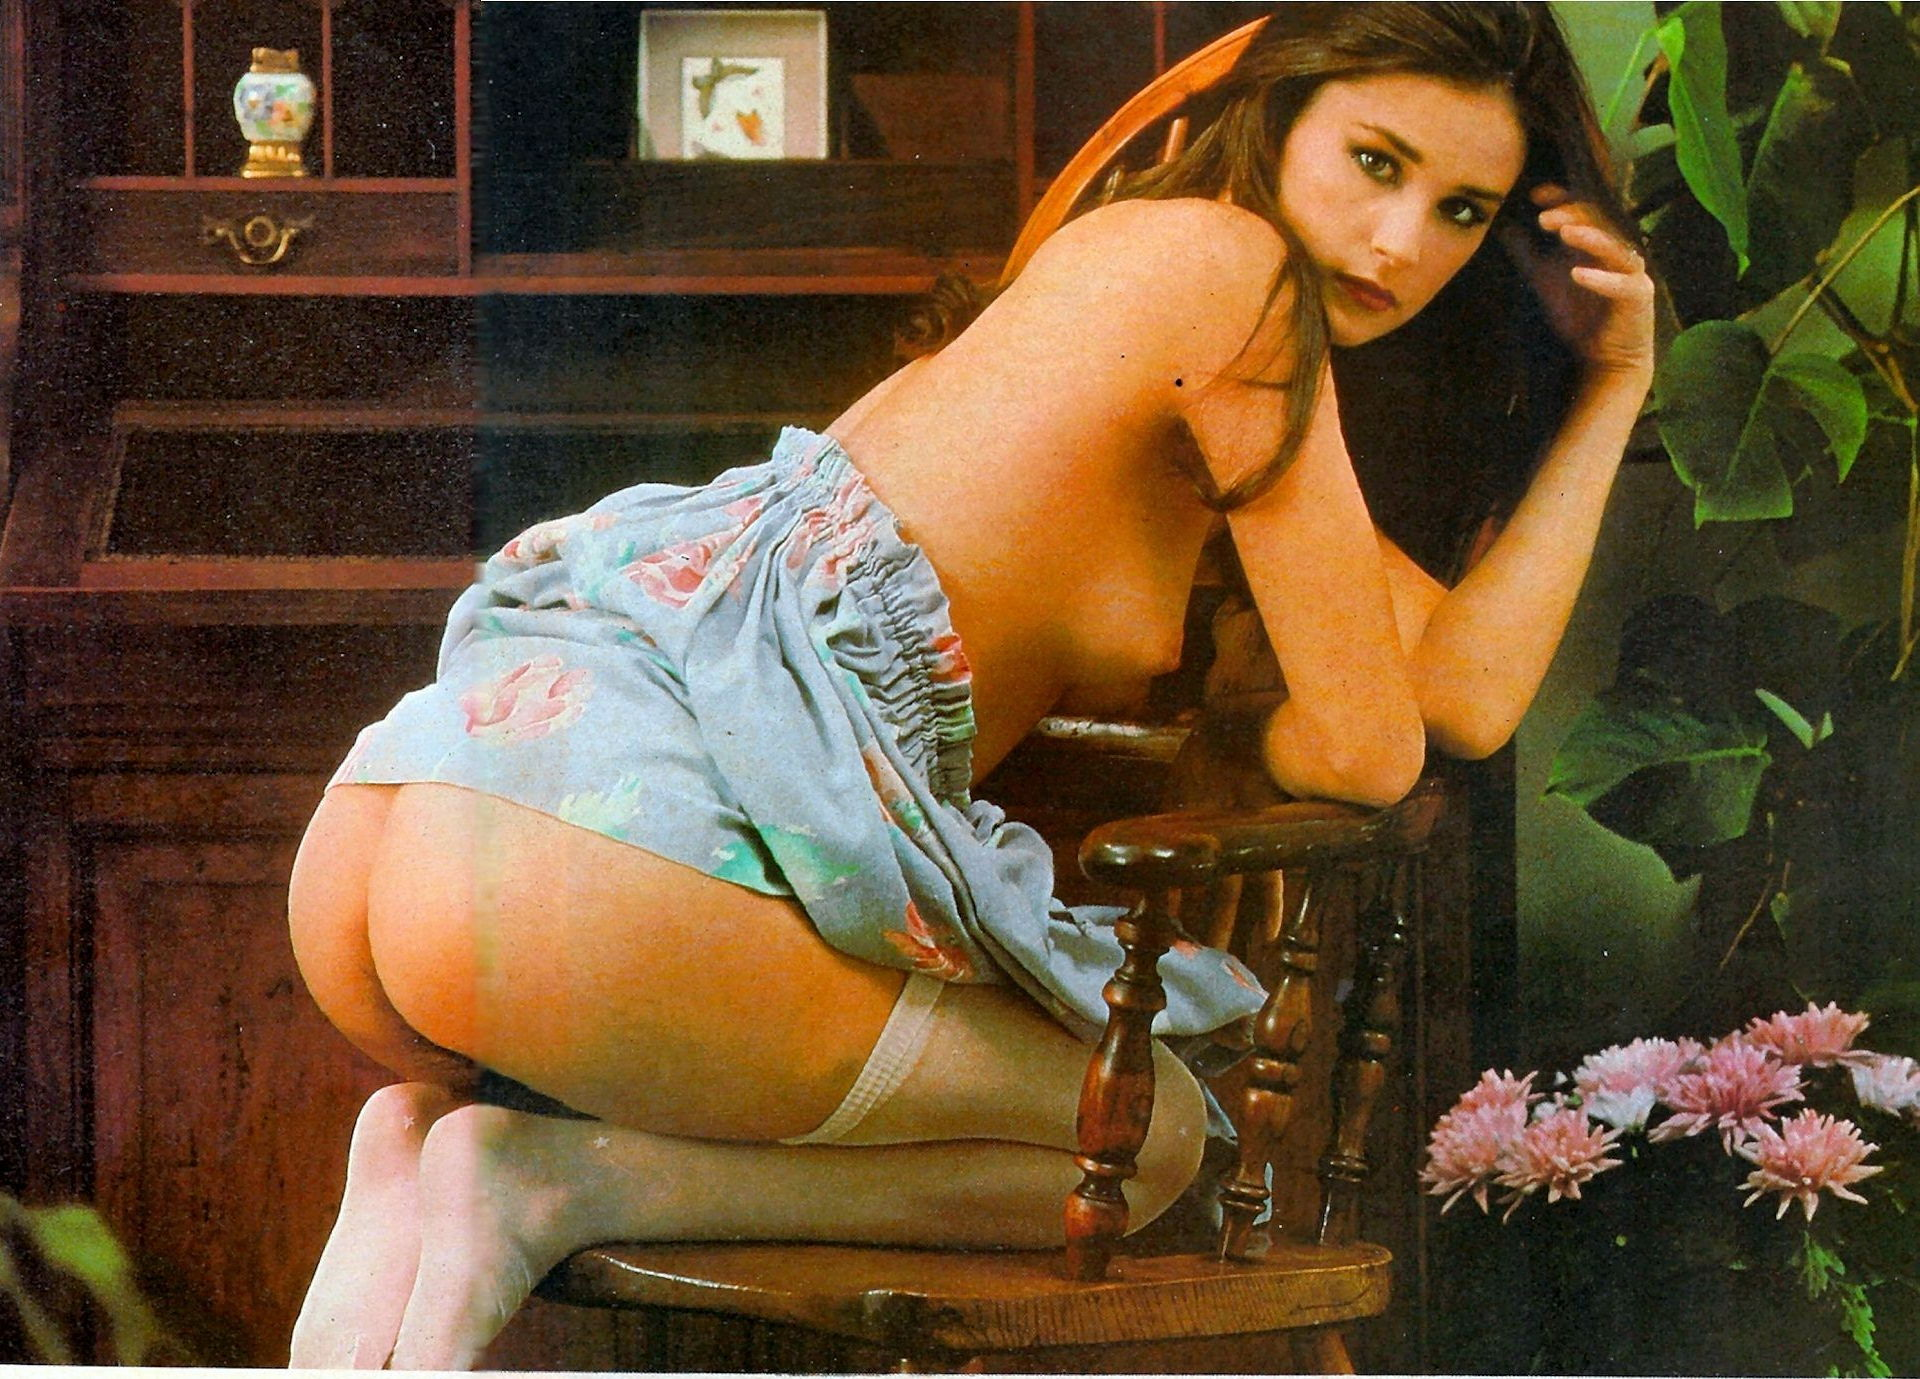 demi-moore-naked-on-chair